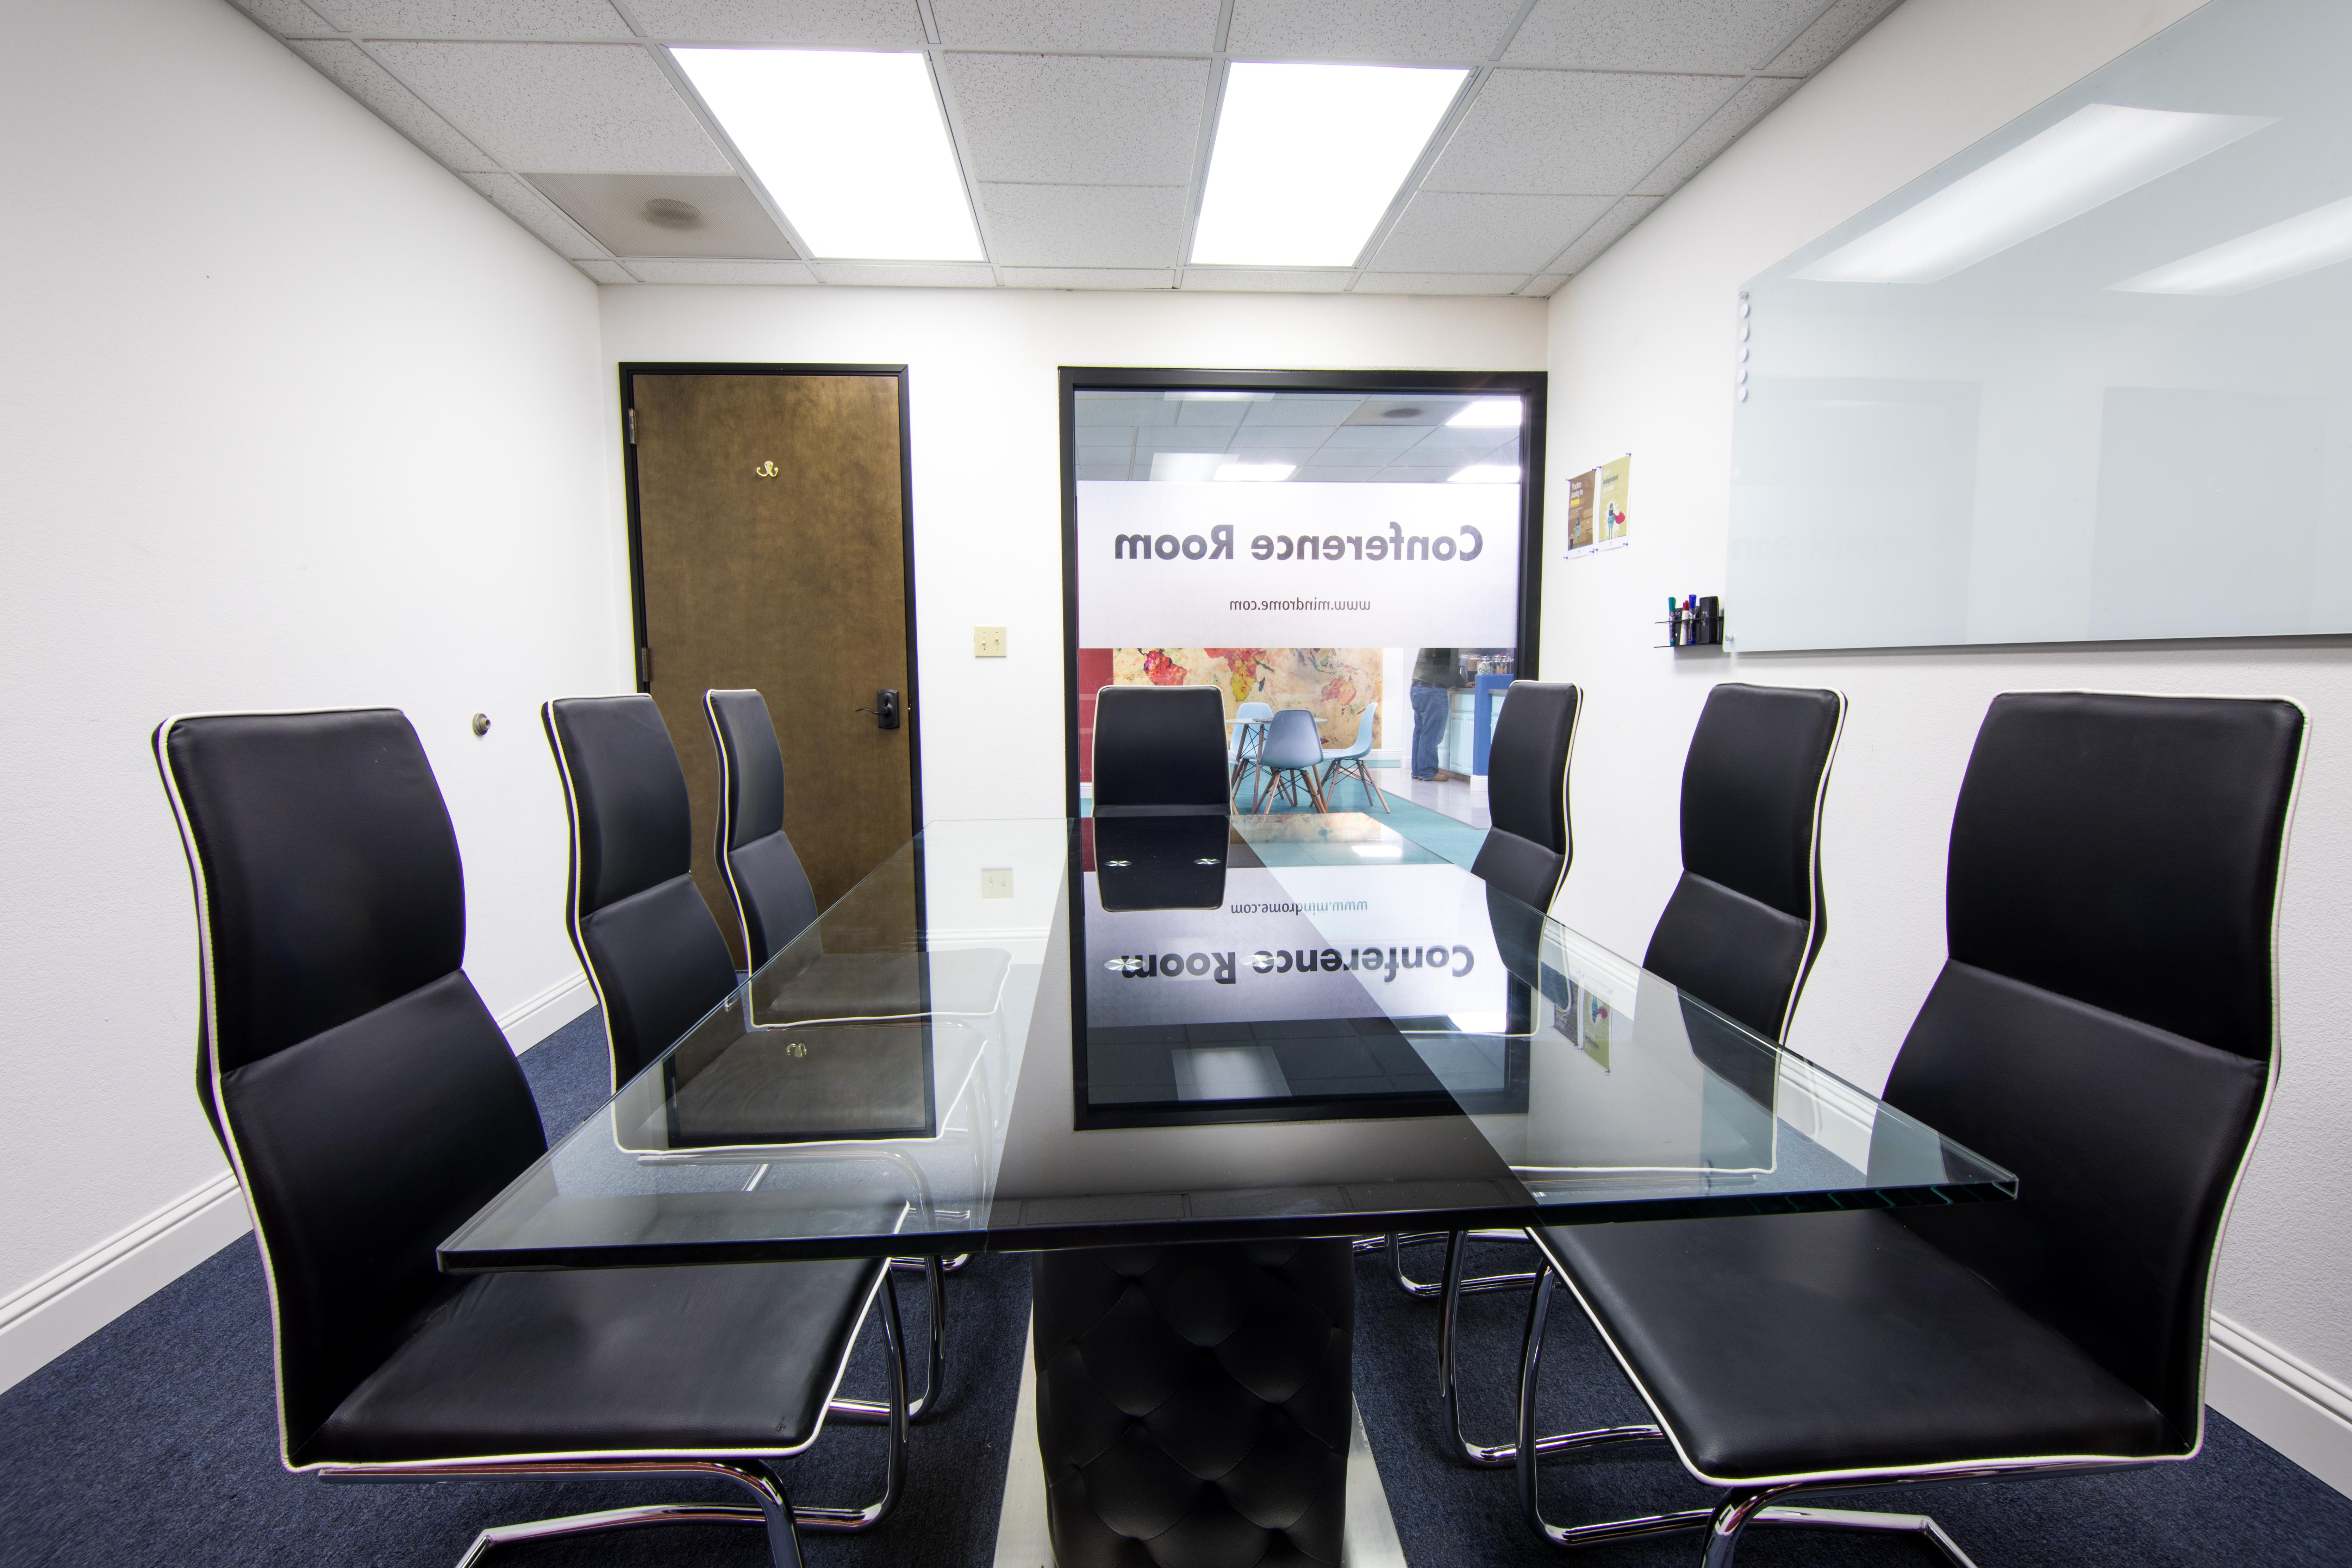 Mindrome Coworking Space and Private Office - Conference Room Spectra